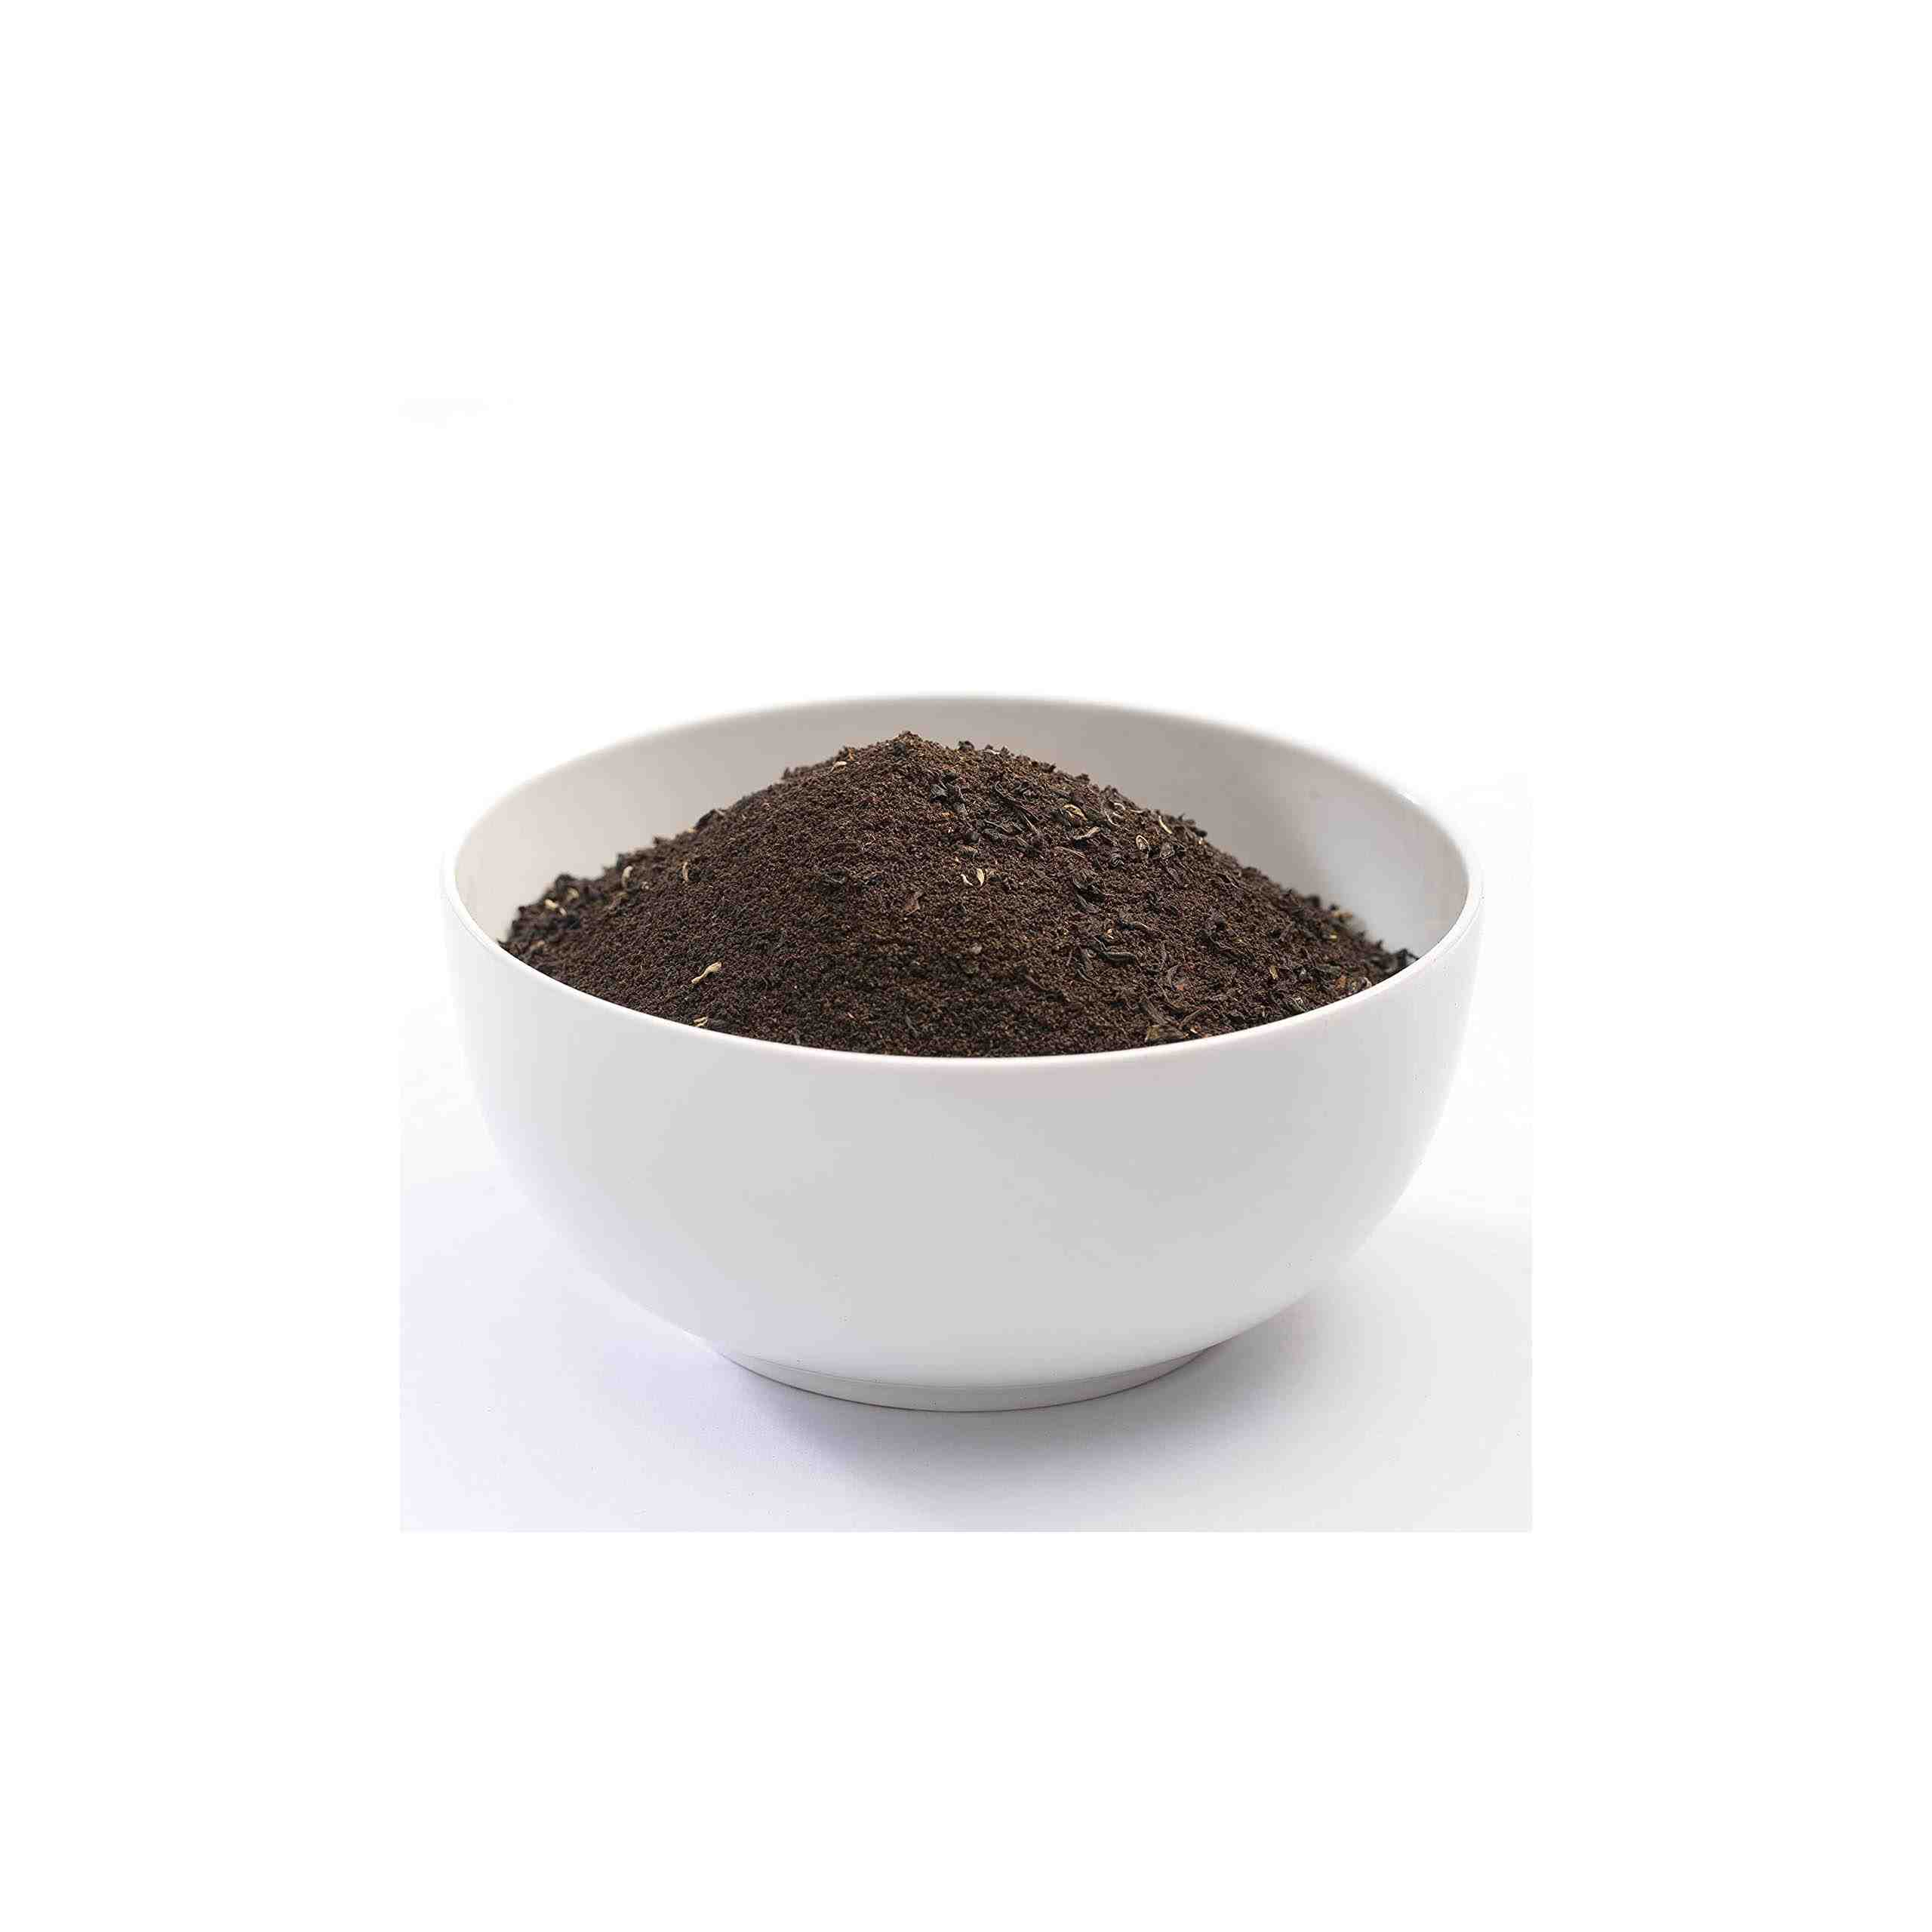 Seeds and Hands Assam Golden Dust Tea Powder [Low Pesticide] (250g)